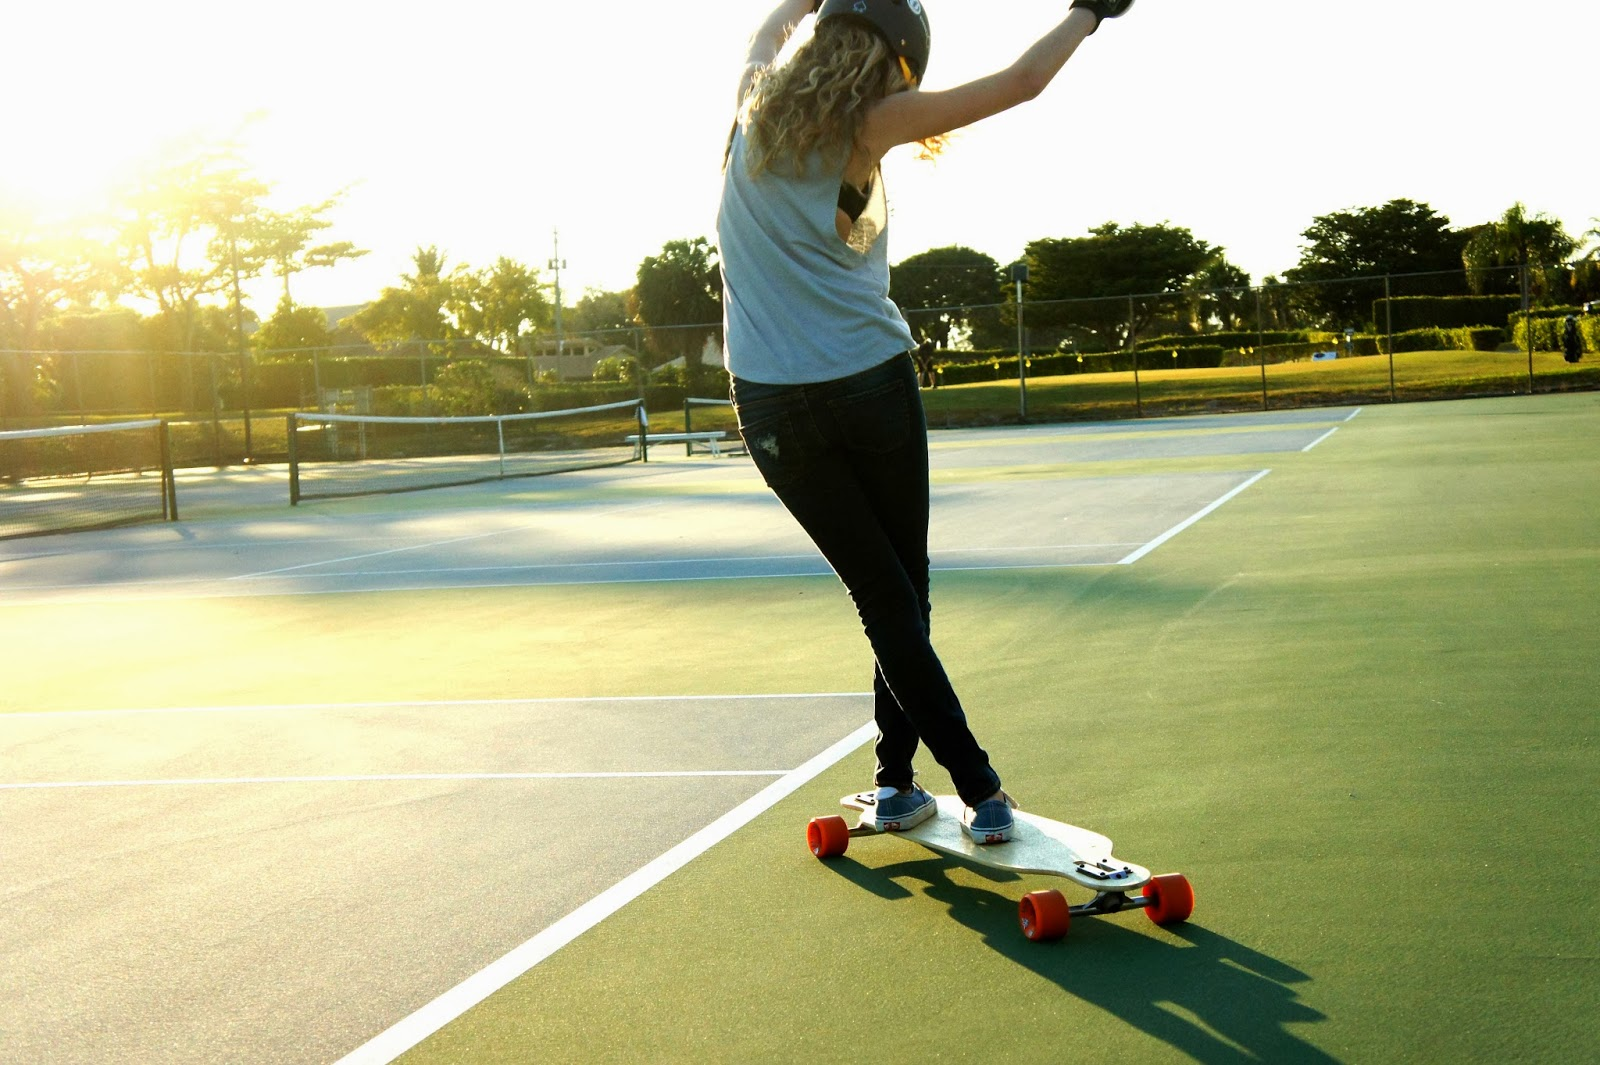 Sunny longboarding style girl tennis court